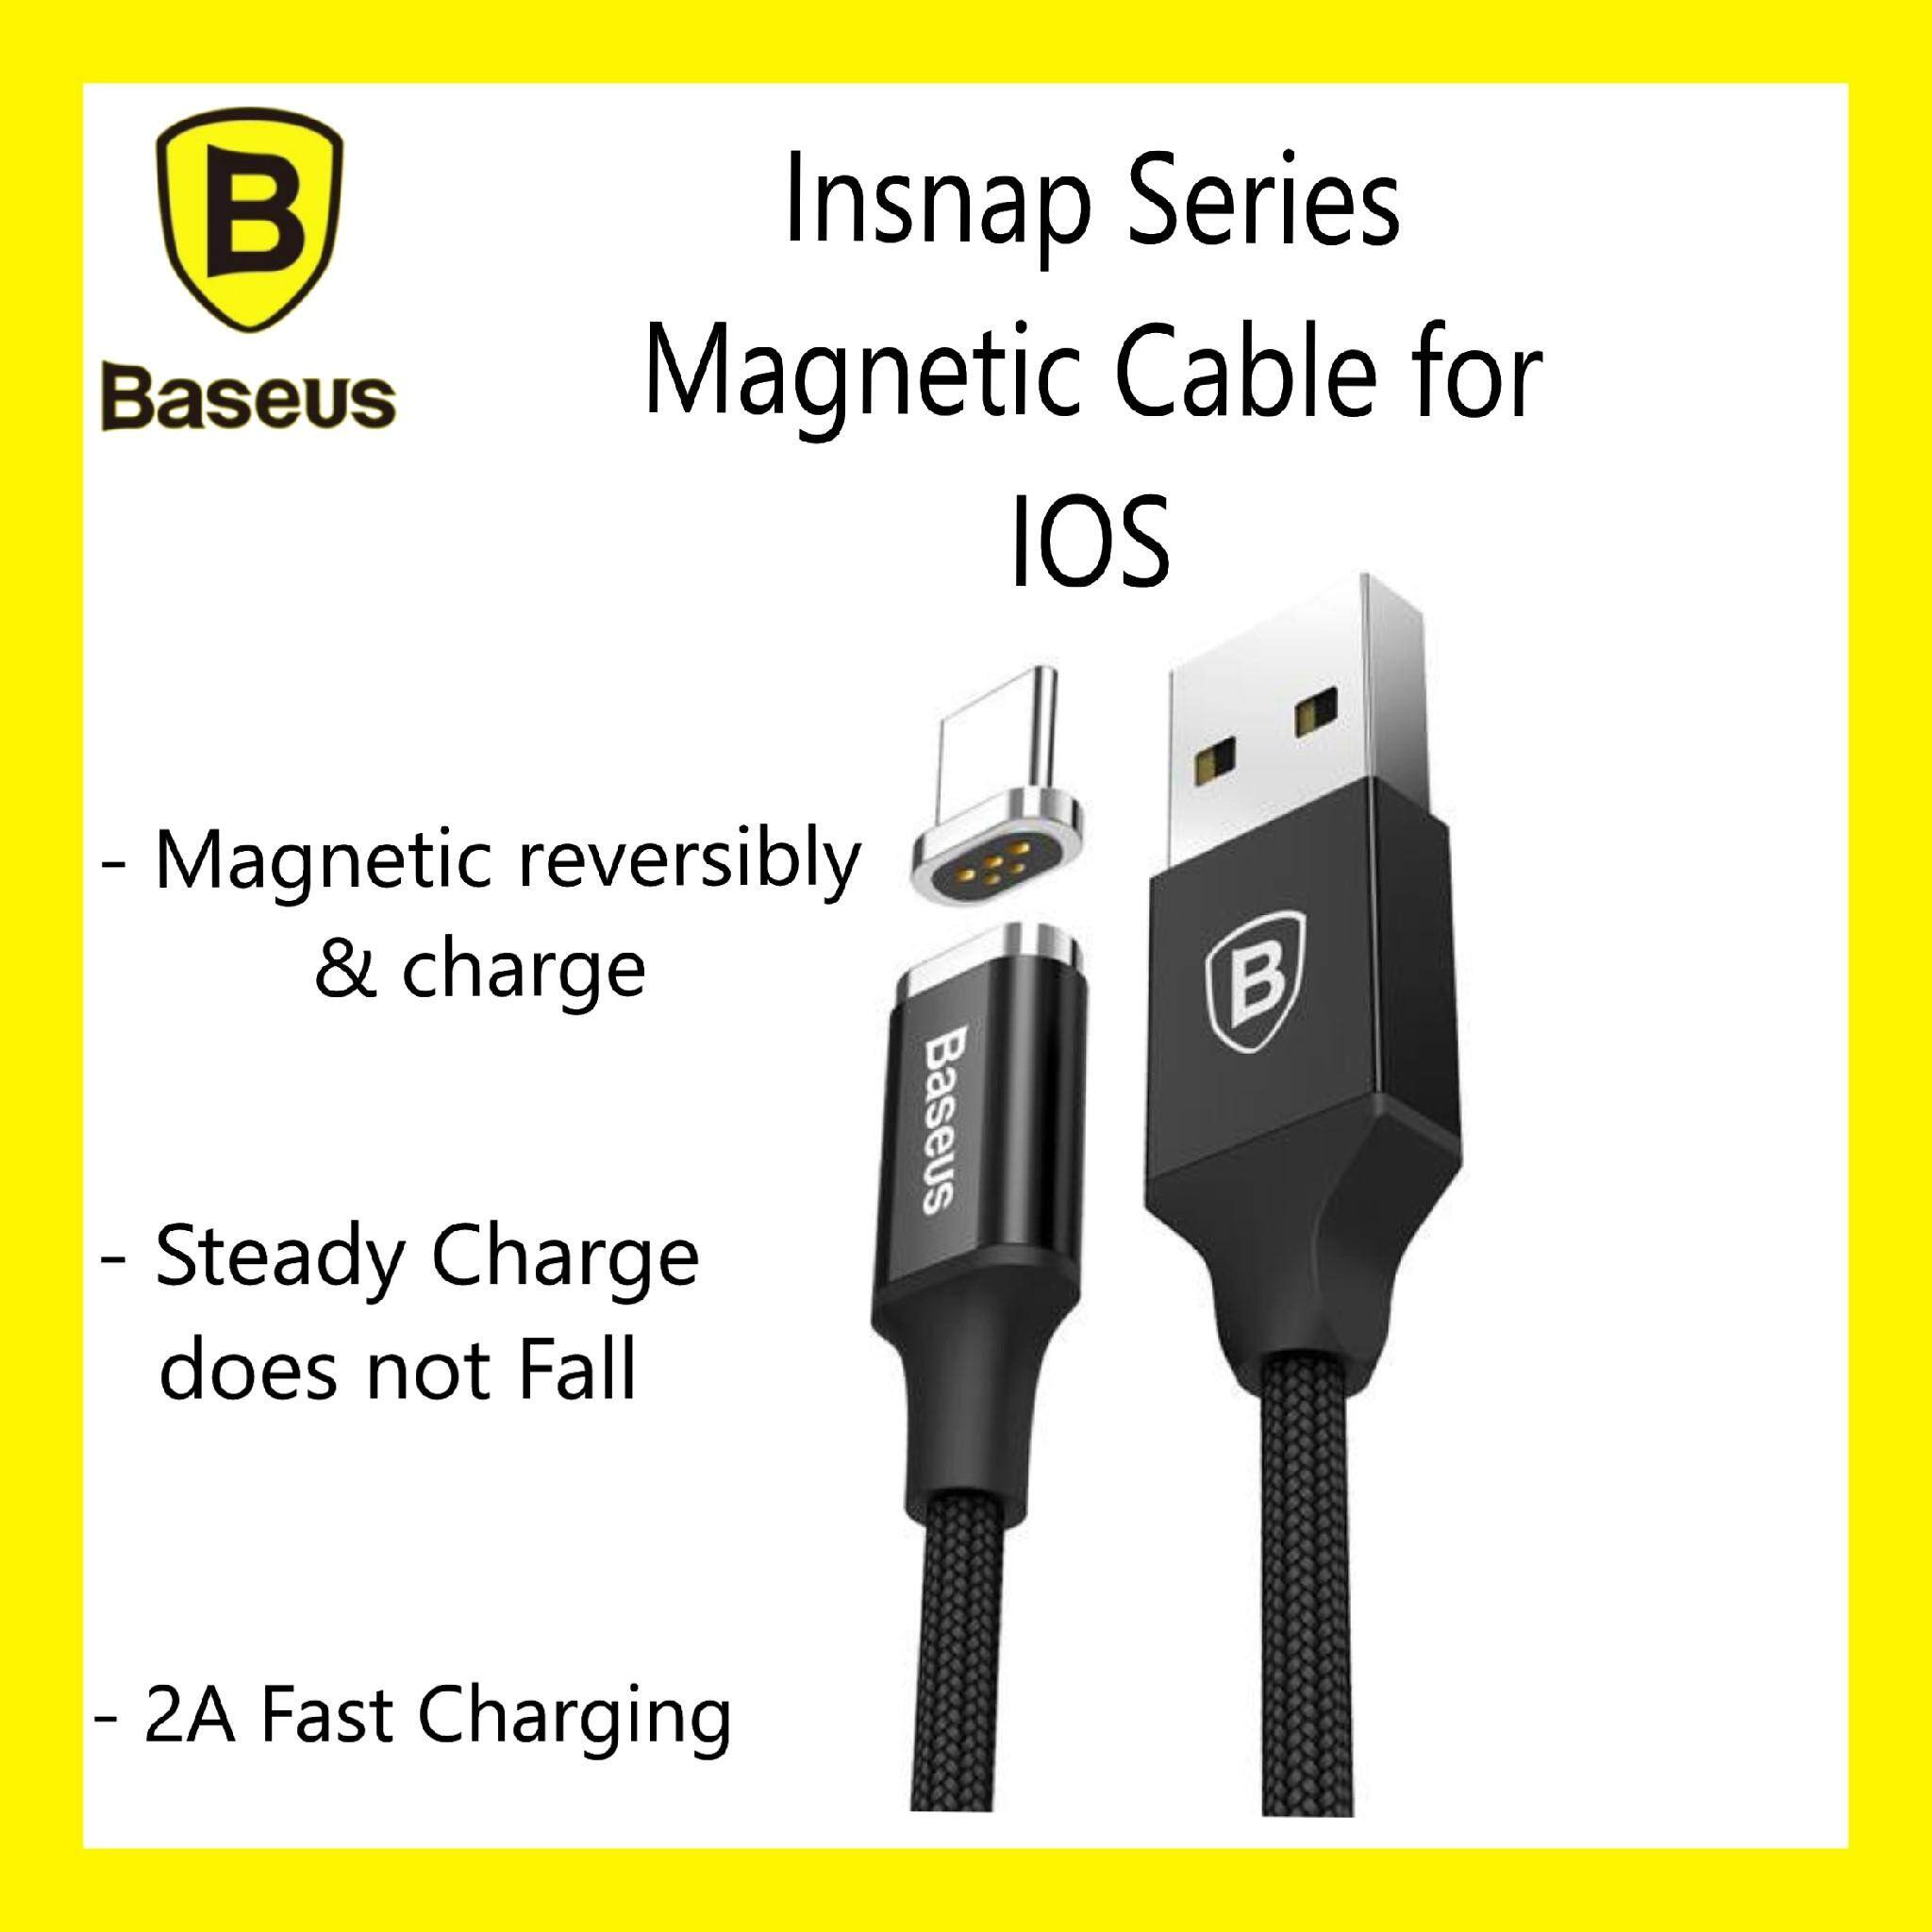 Baseus New Insnap 2 Series Magnetic Cable iOS